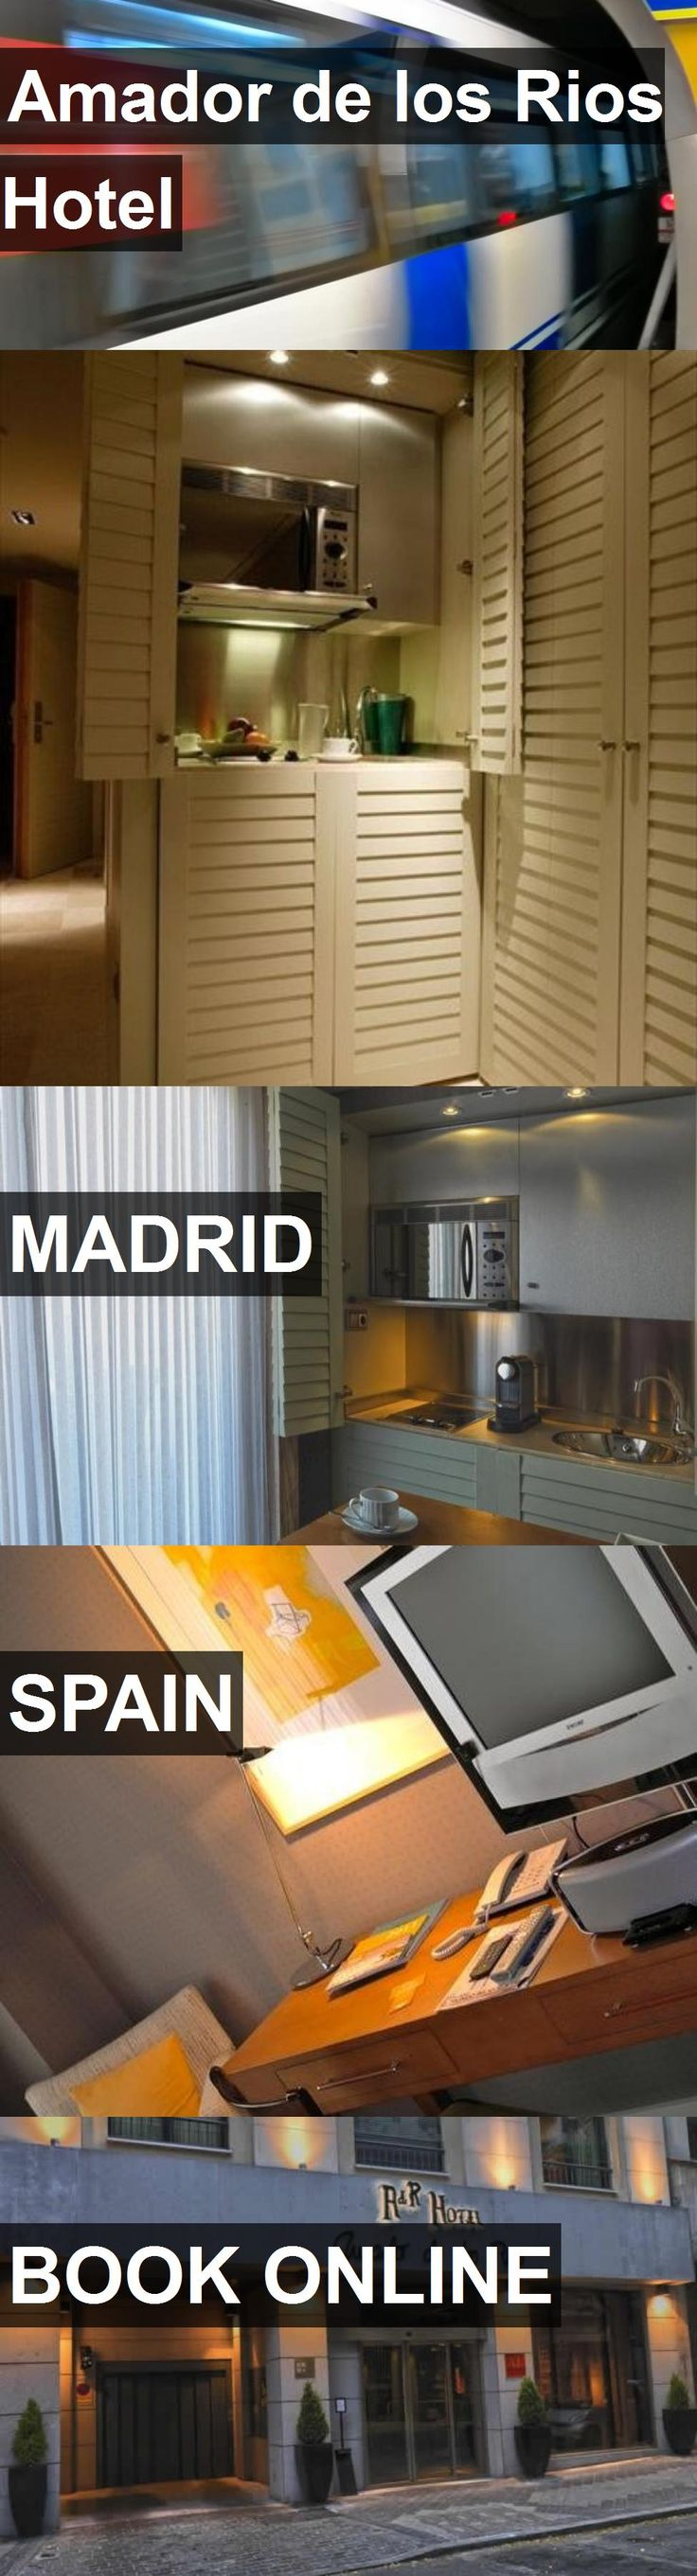 Hotel Amador de los Rios Hotel in Madrid, Spain. For more information, photos, reviews and best prices please follow the link. #Spain #Madrid #hotel #travel #vacation